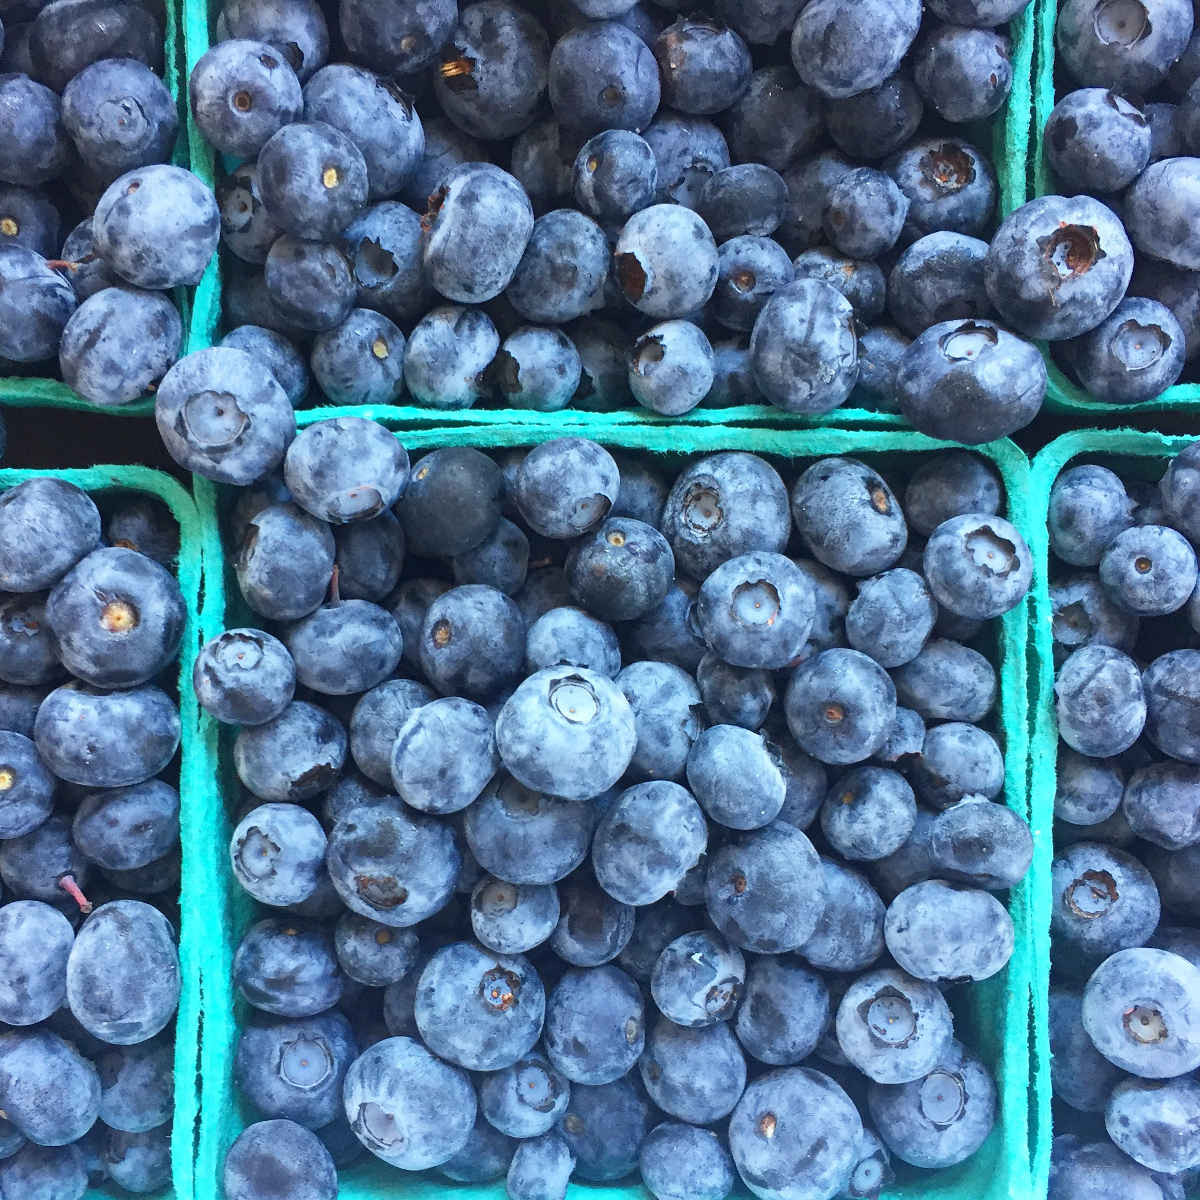 Blueberries, Organic, Driscoll